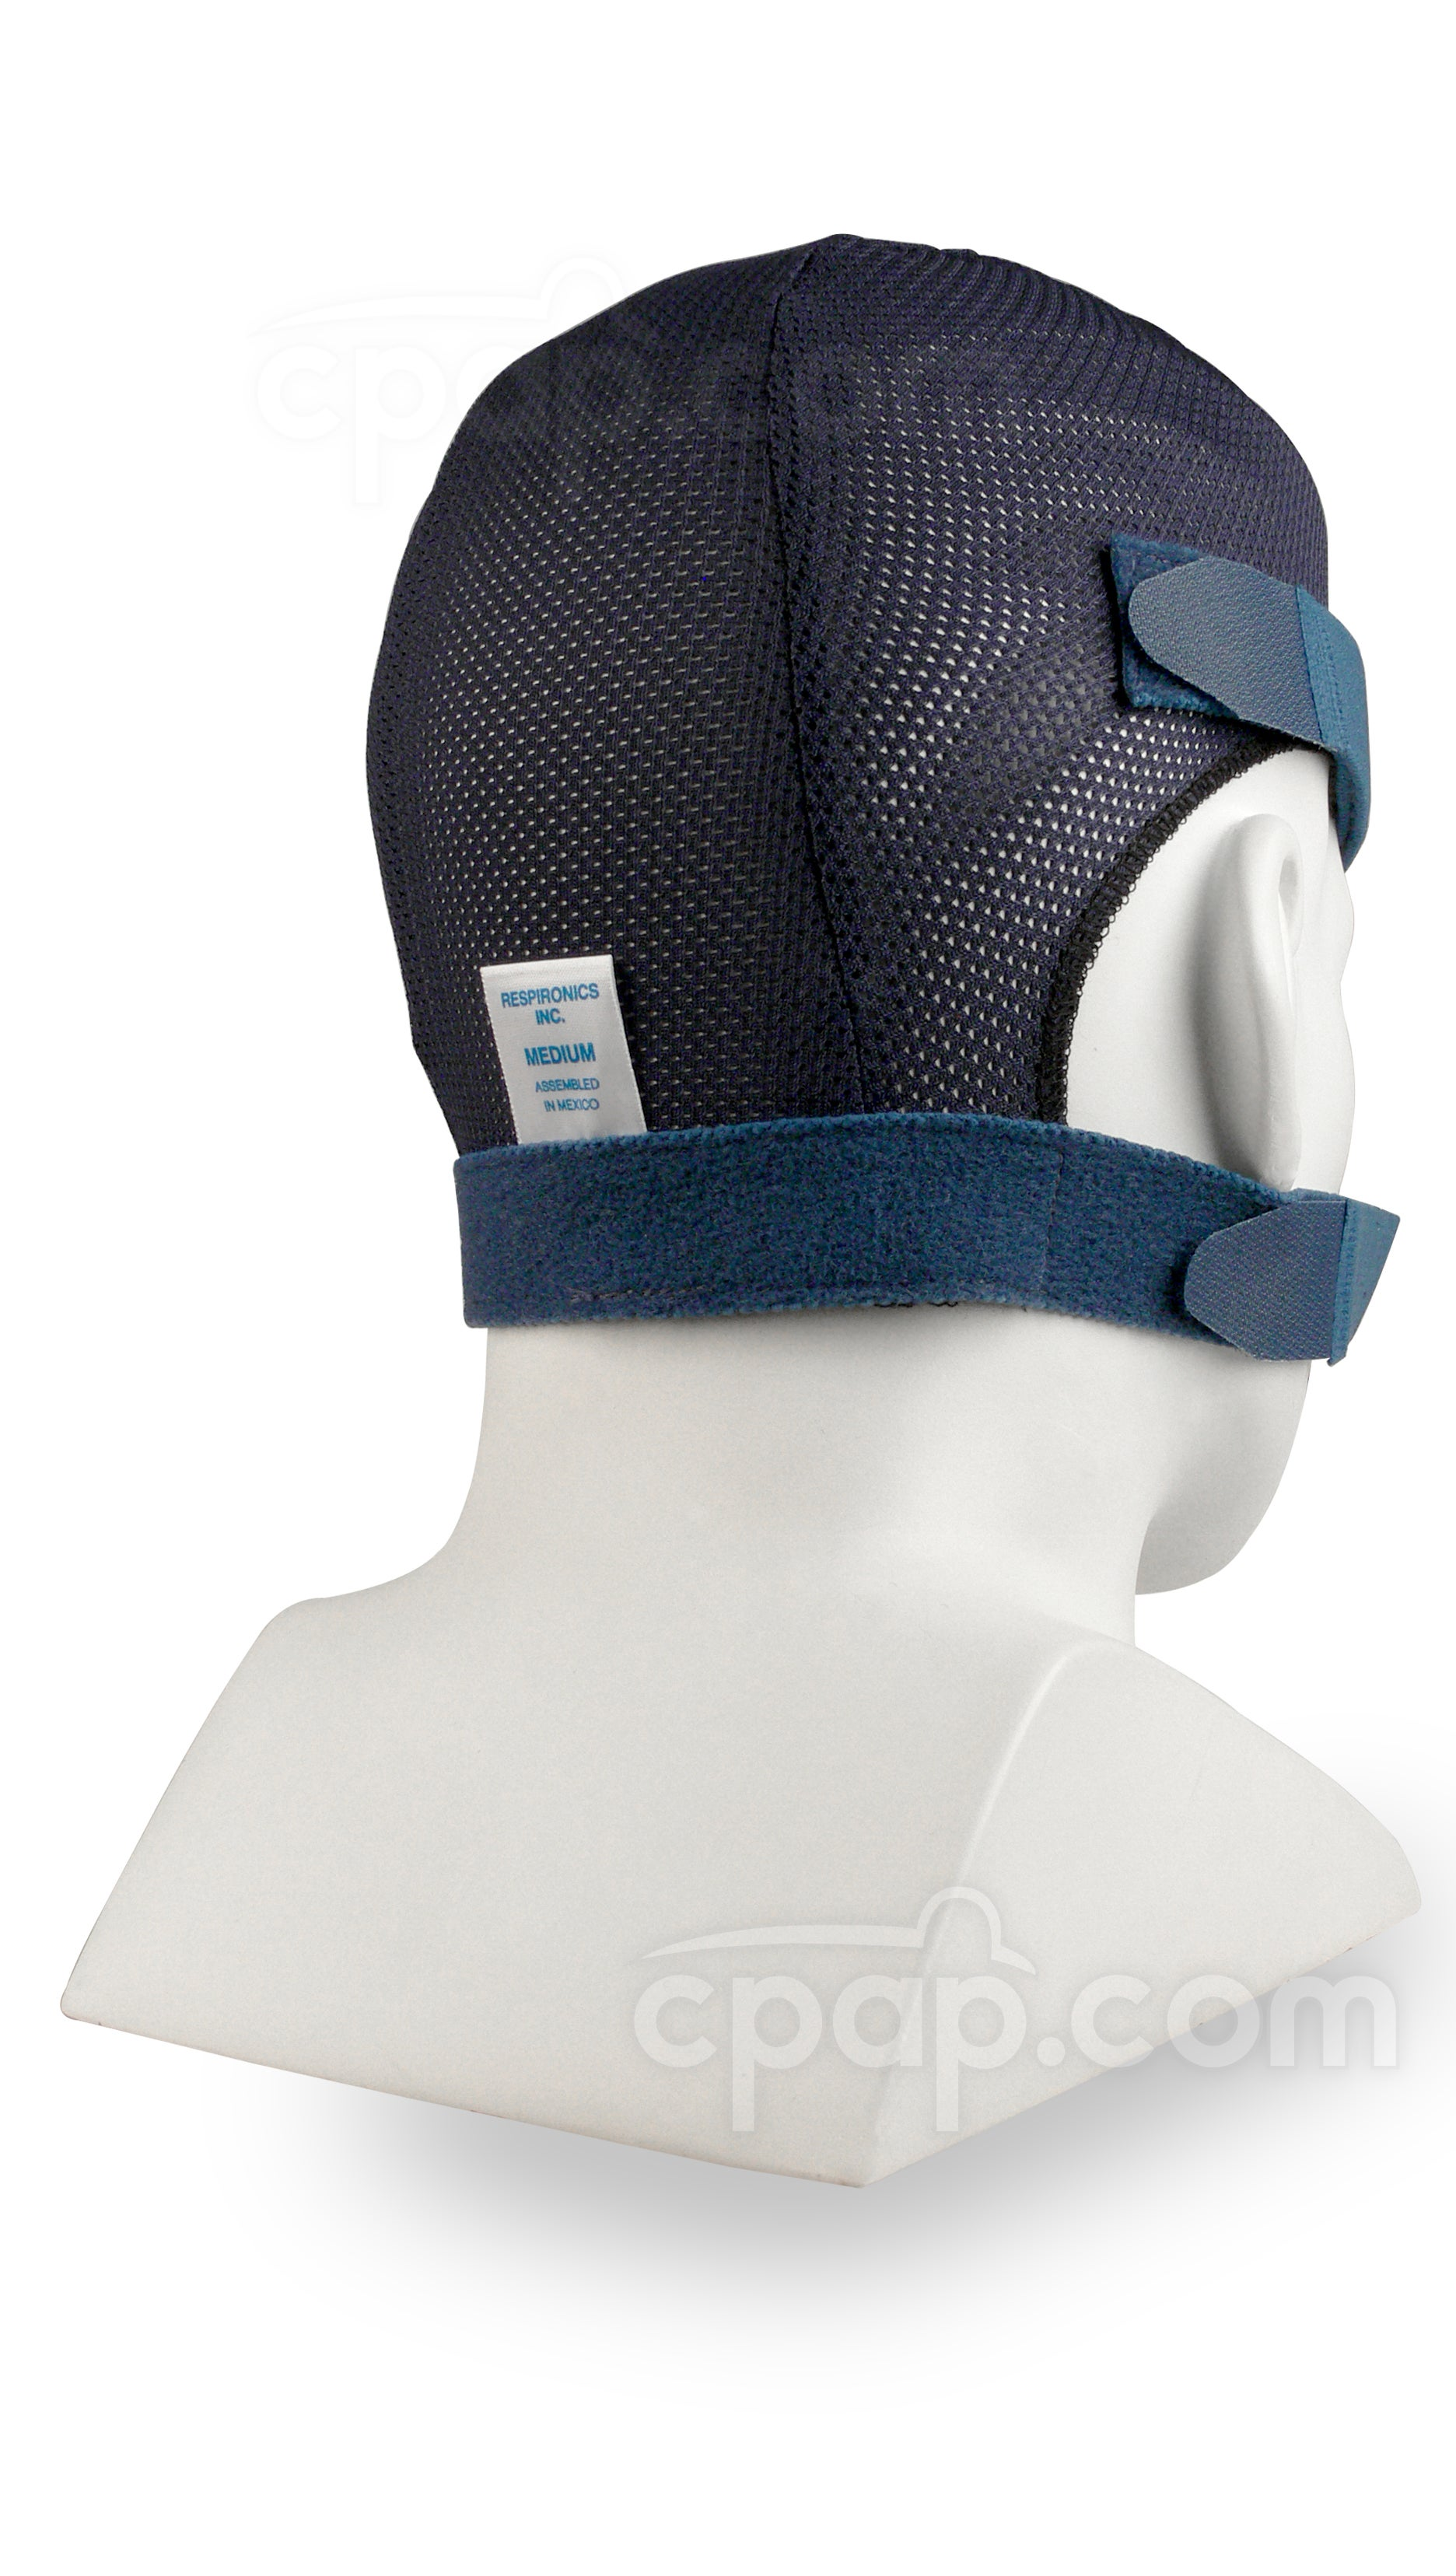 Blue Mesh SoftCap Headgear - Angled View (Mannequin Not Included)